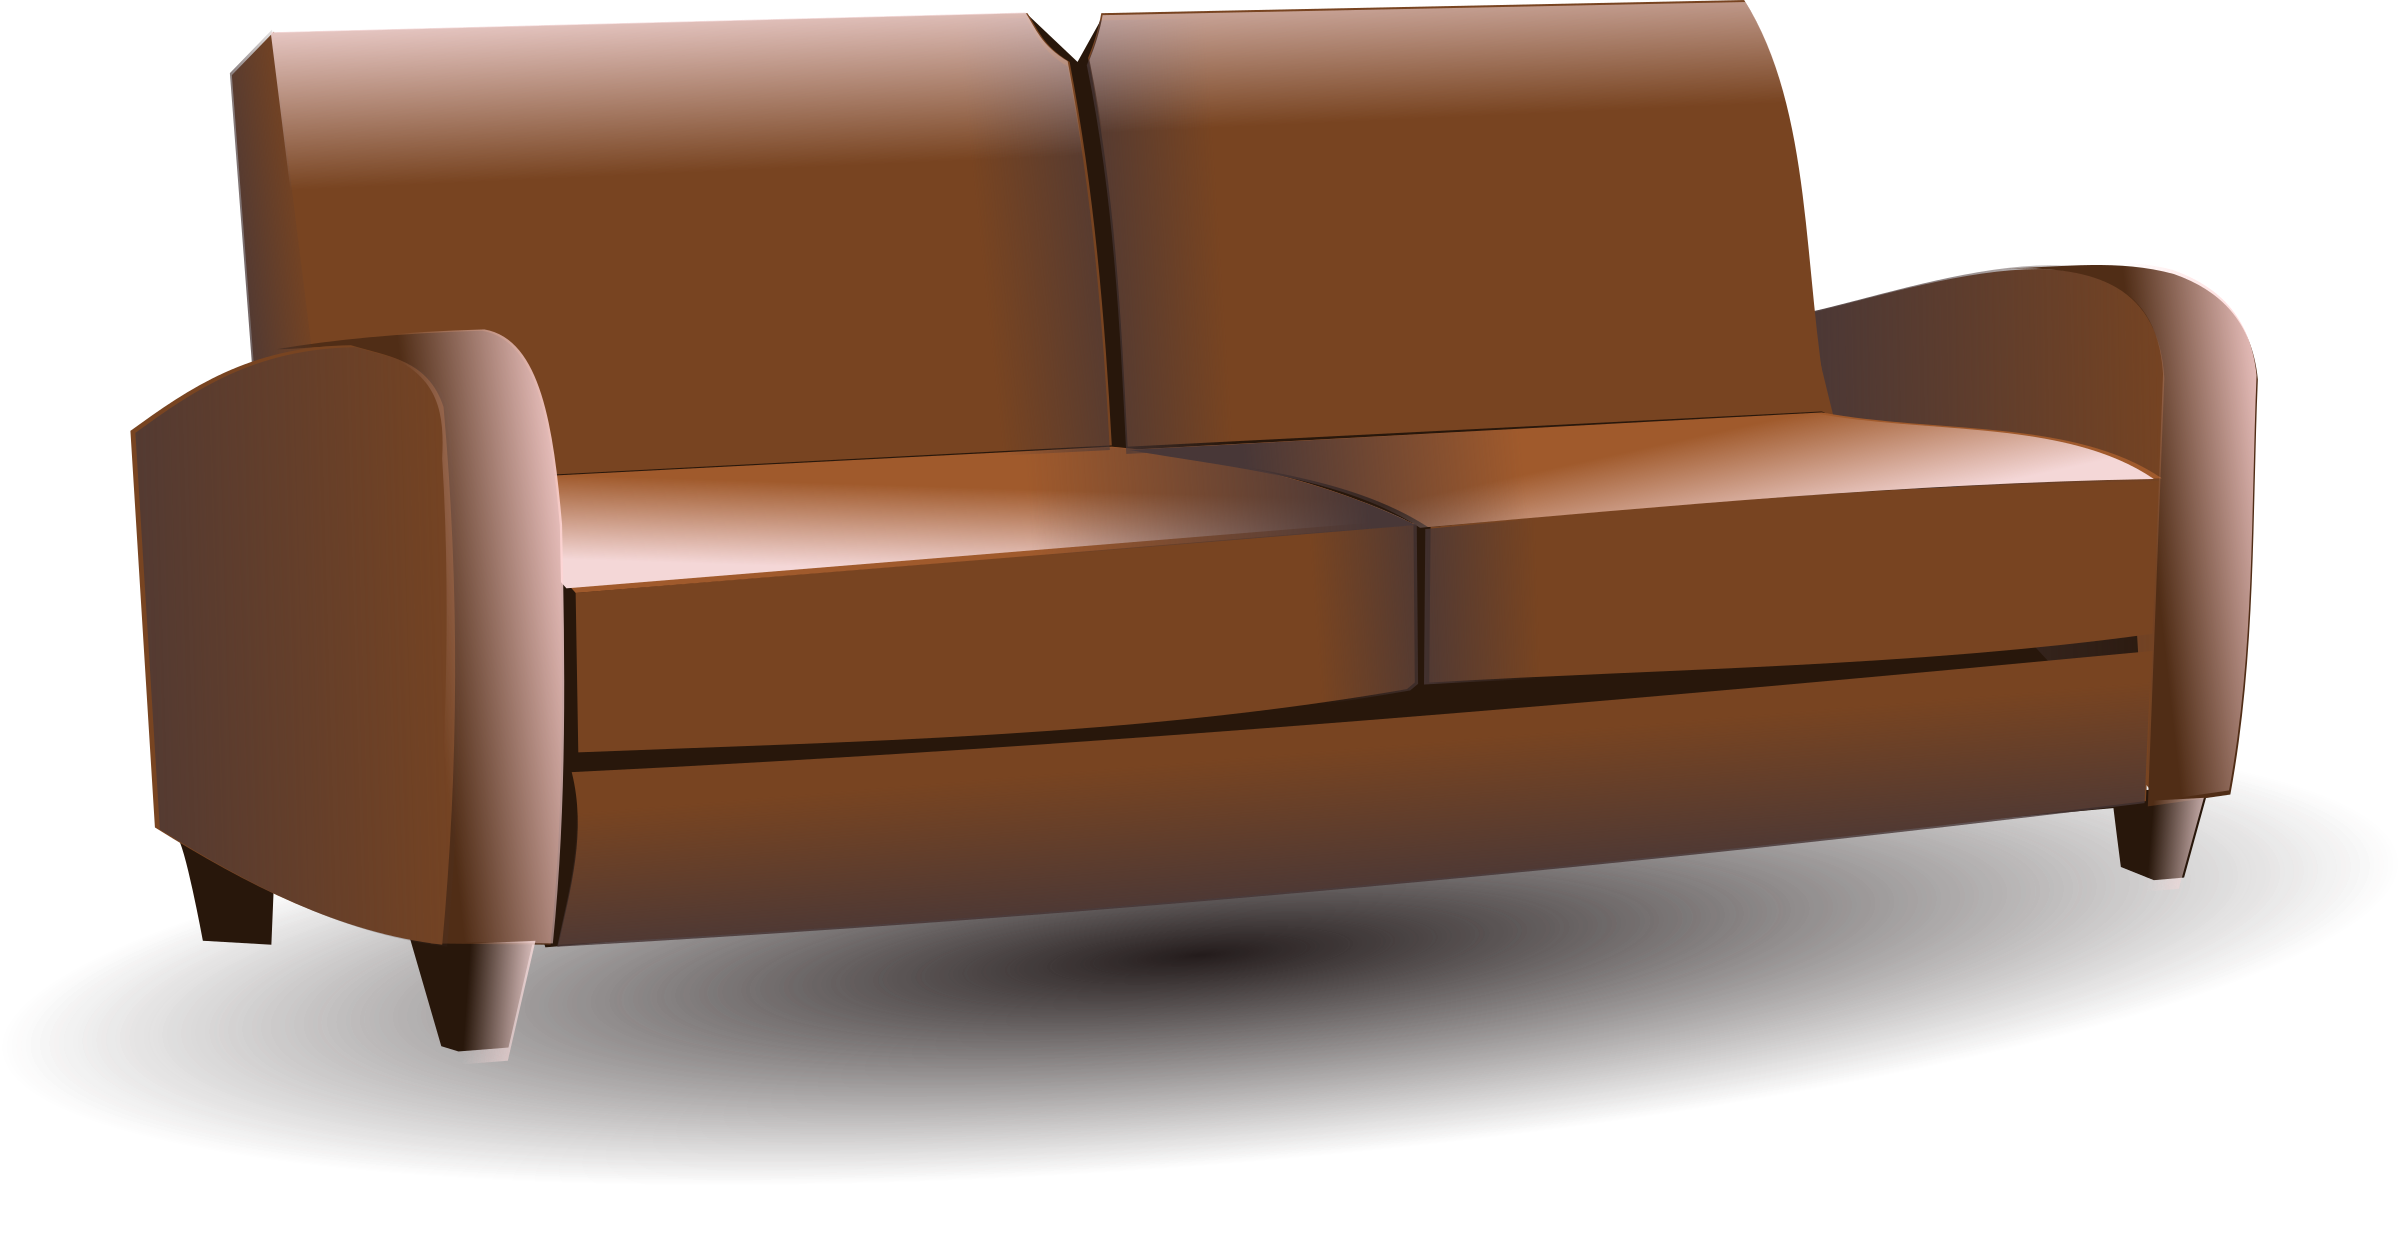 Sofa big image png. Couch clipart household furniture